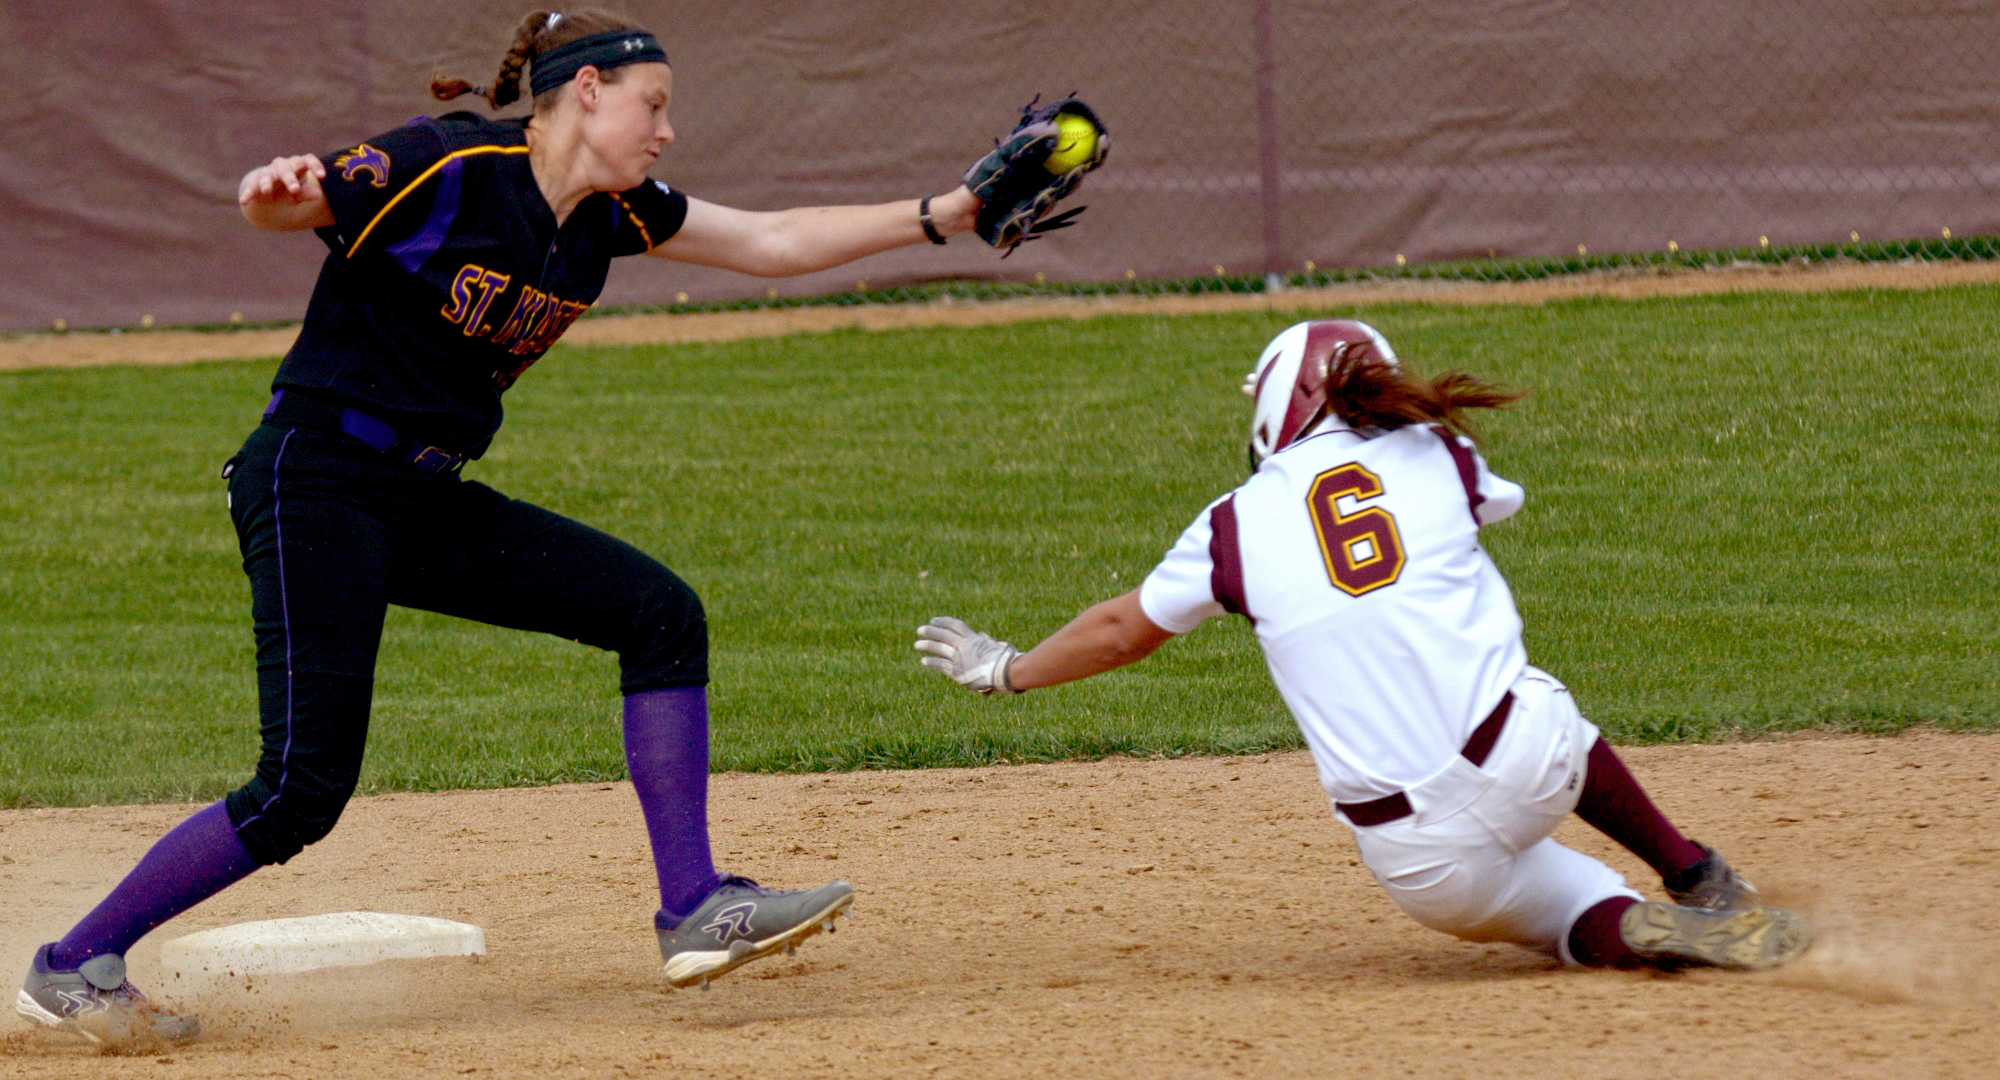 Senior Madison Little slides under the tag for her single-season record-breaking 25th stolen base during the Cobbers' DH with St. Catherine.